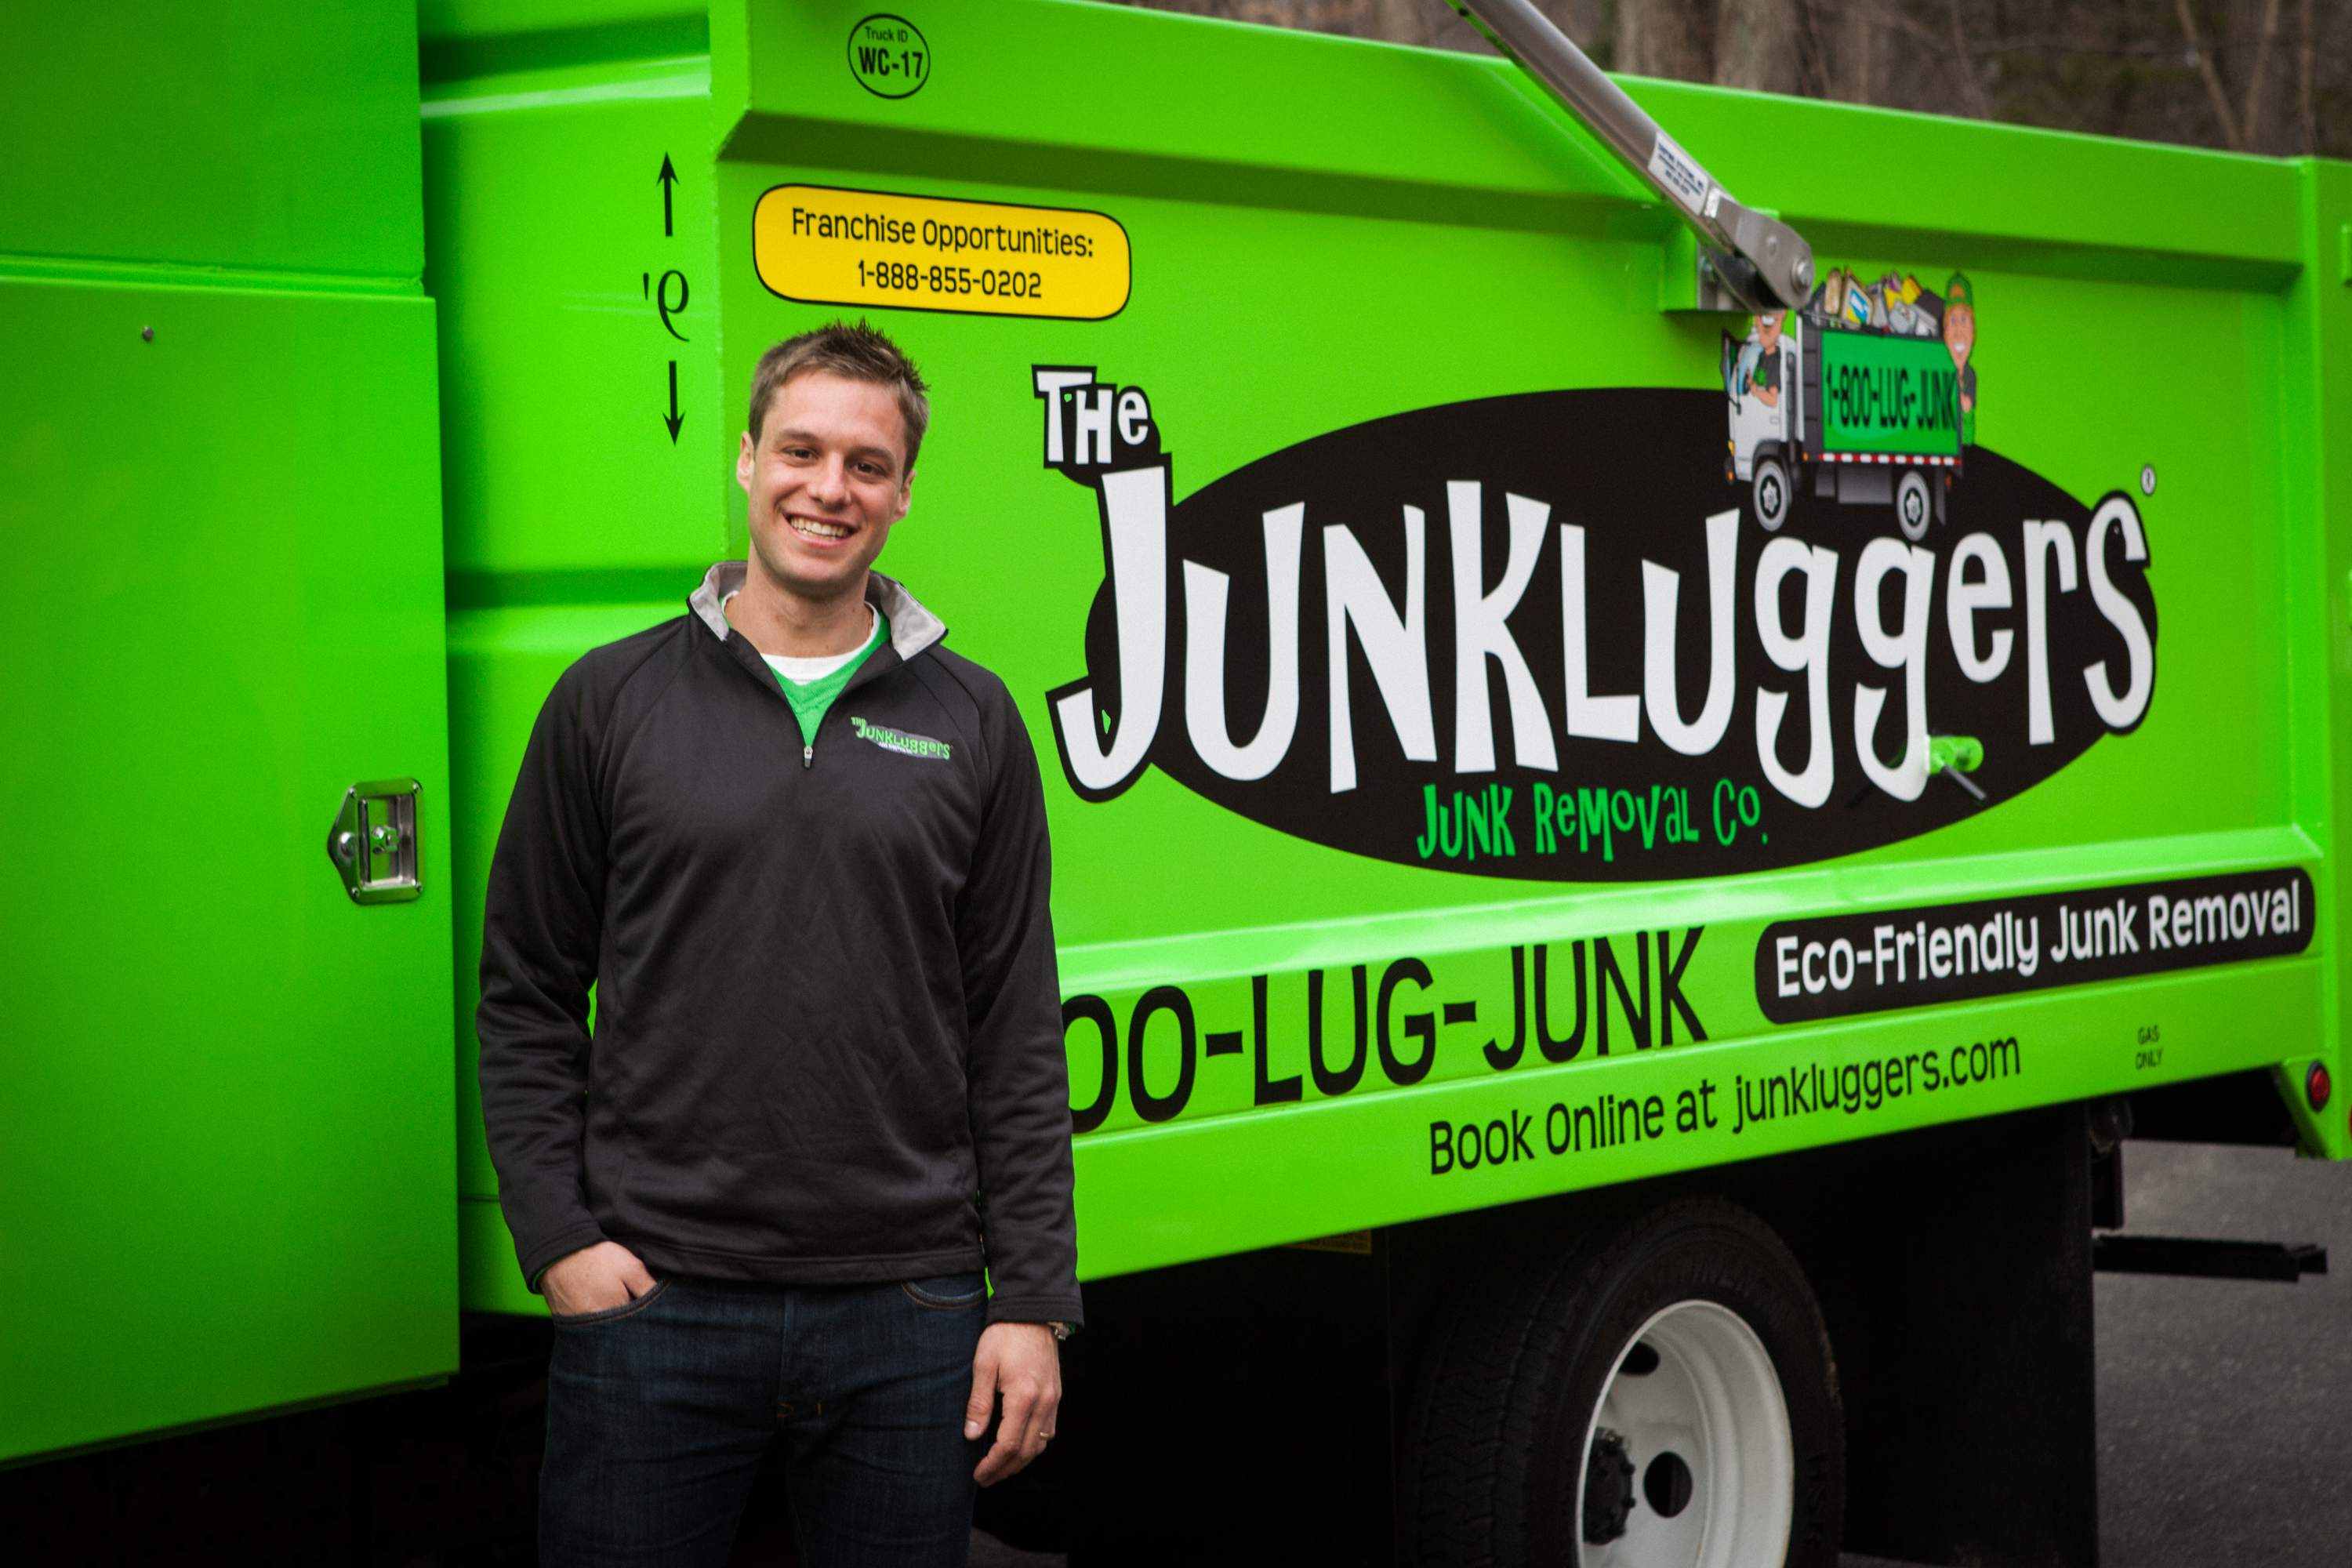 Clearing Away Self-Doubt Got My Junk Removal Business Out of a Rut